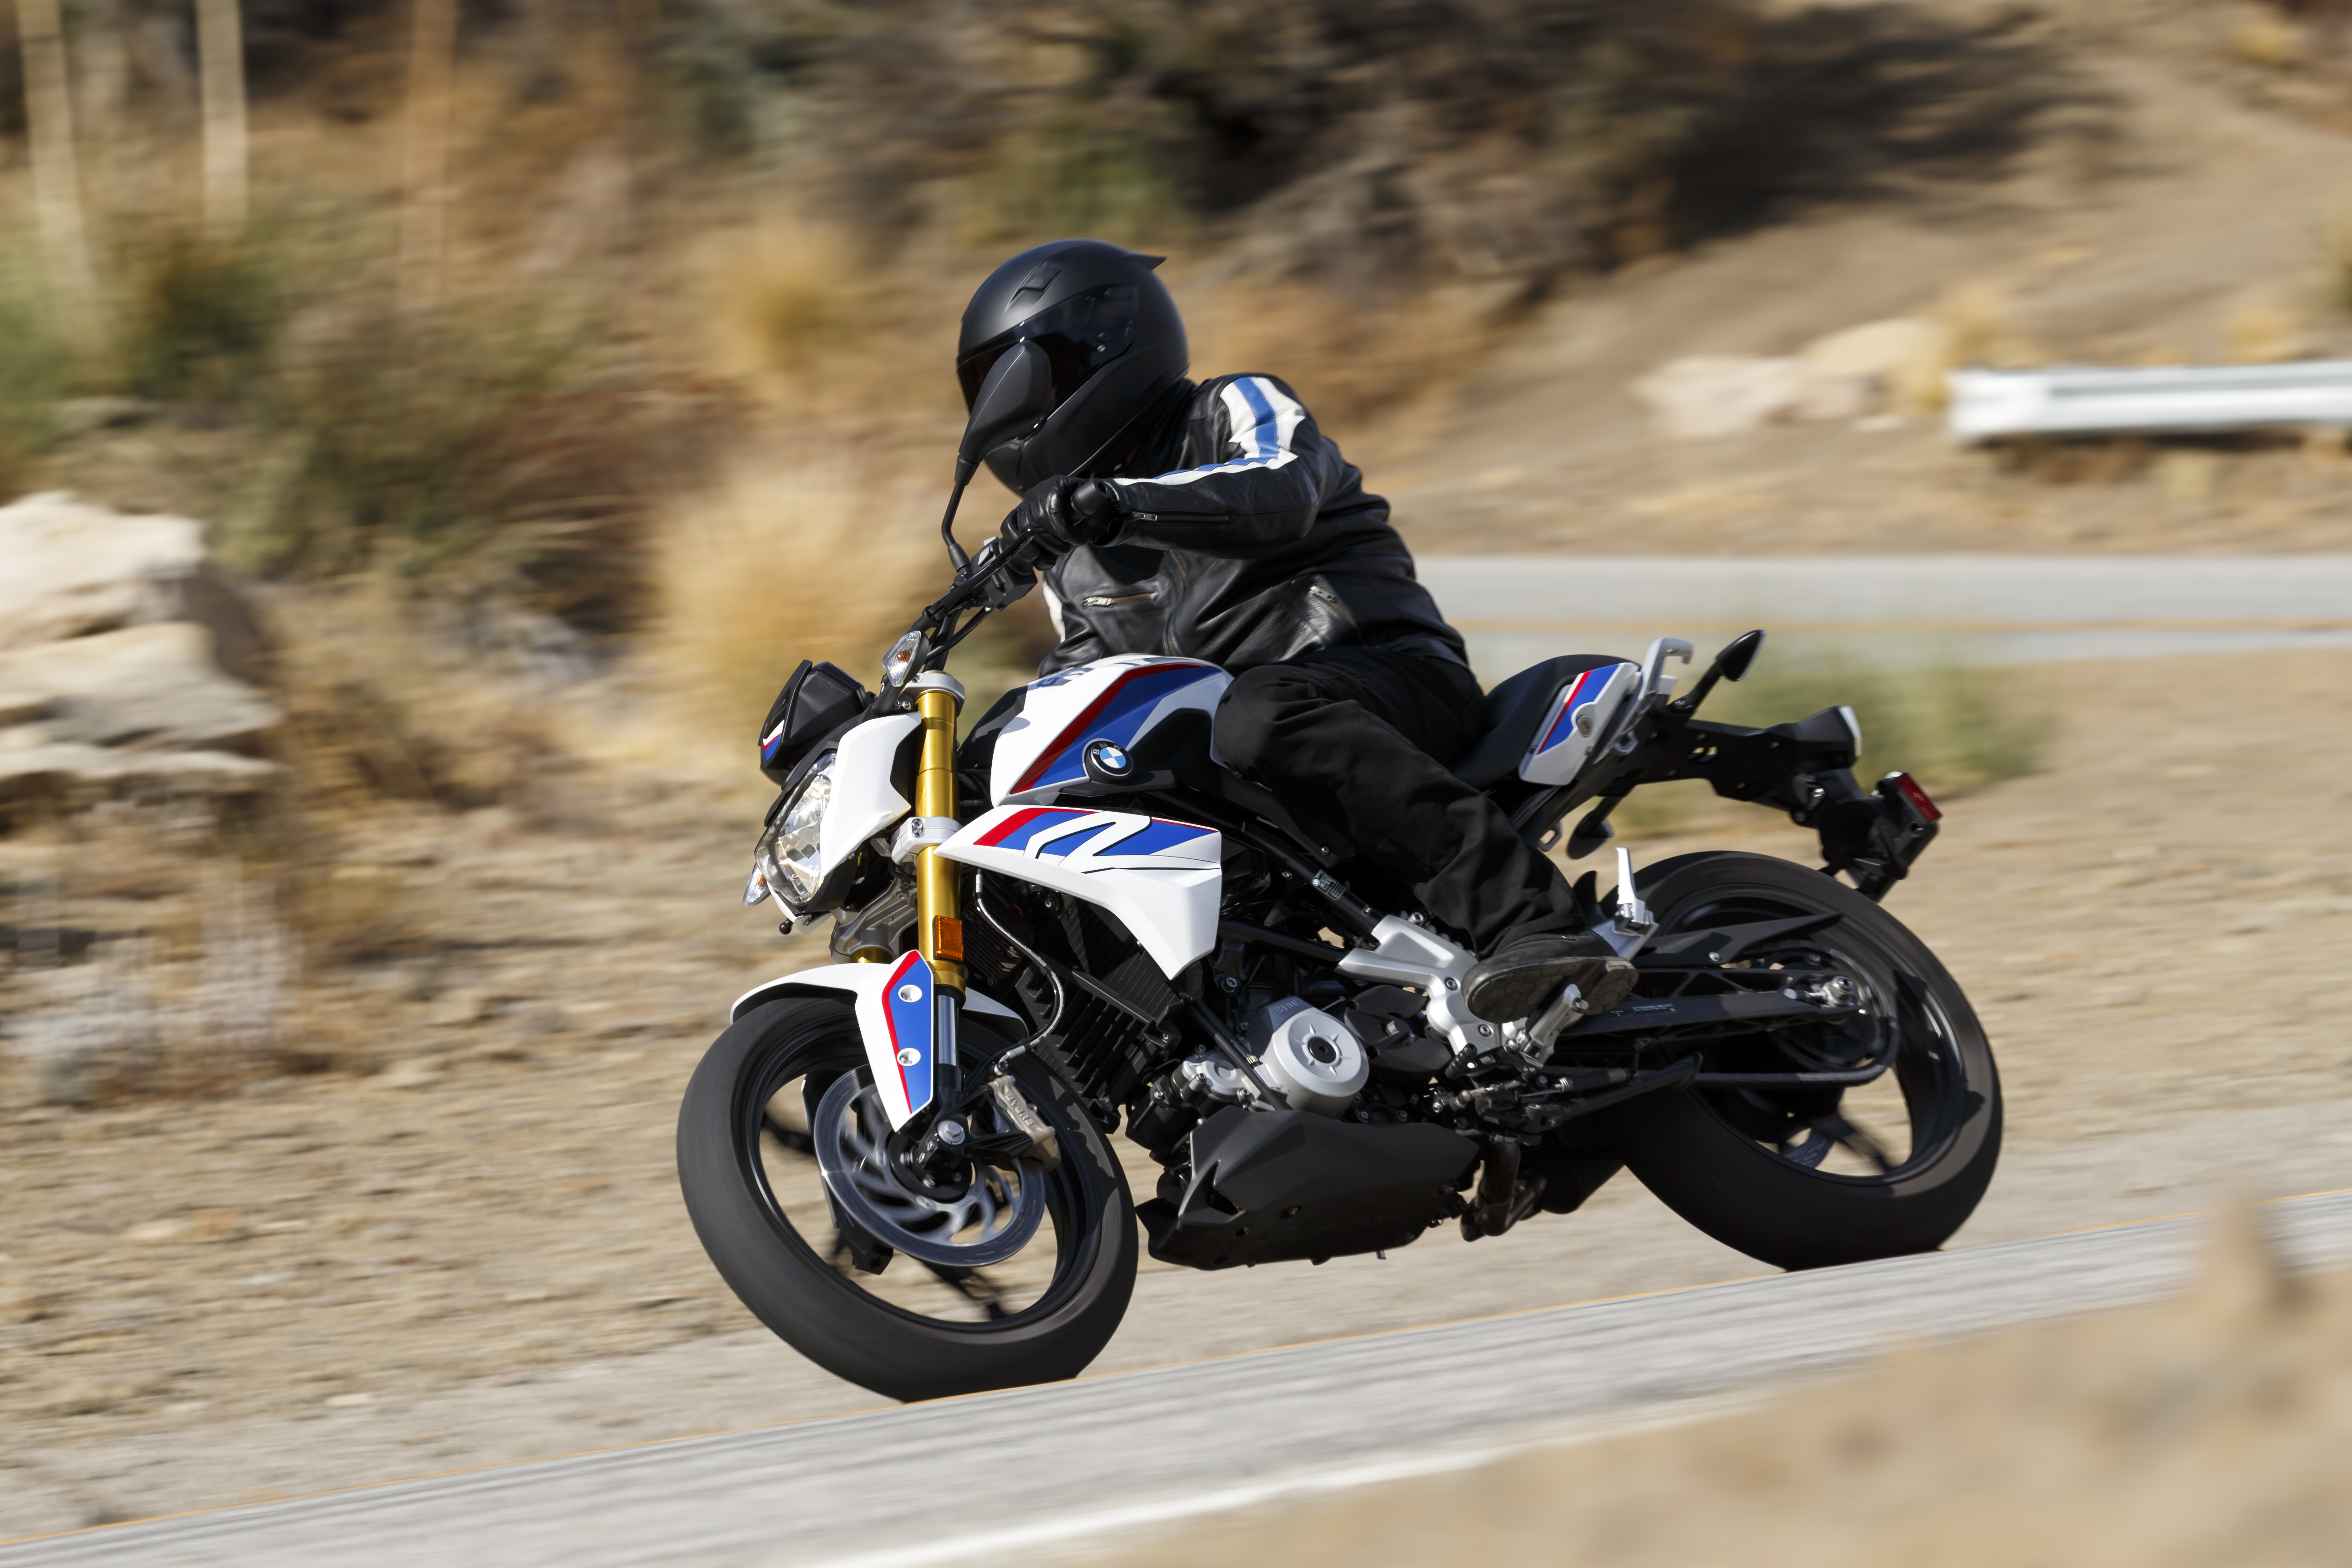 bmw g 310 r preview bmw 39 s newest roadster priced from rm. Black Bedroom Furniture Sets. Home Design Ideas